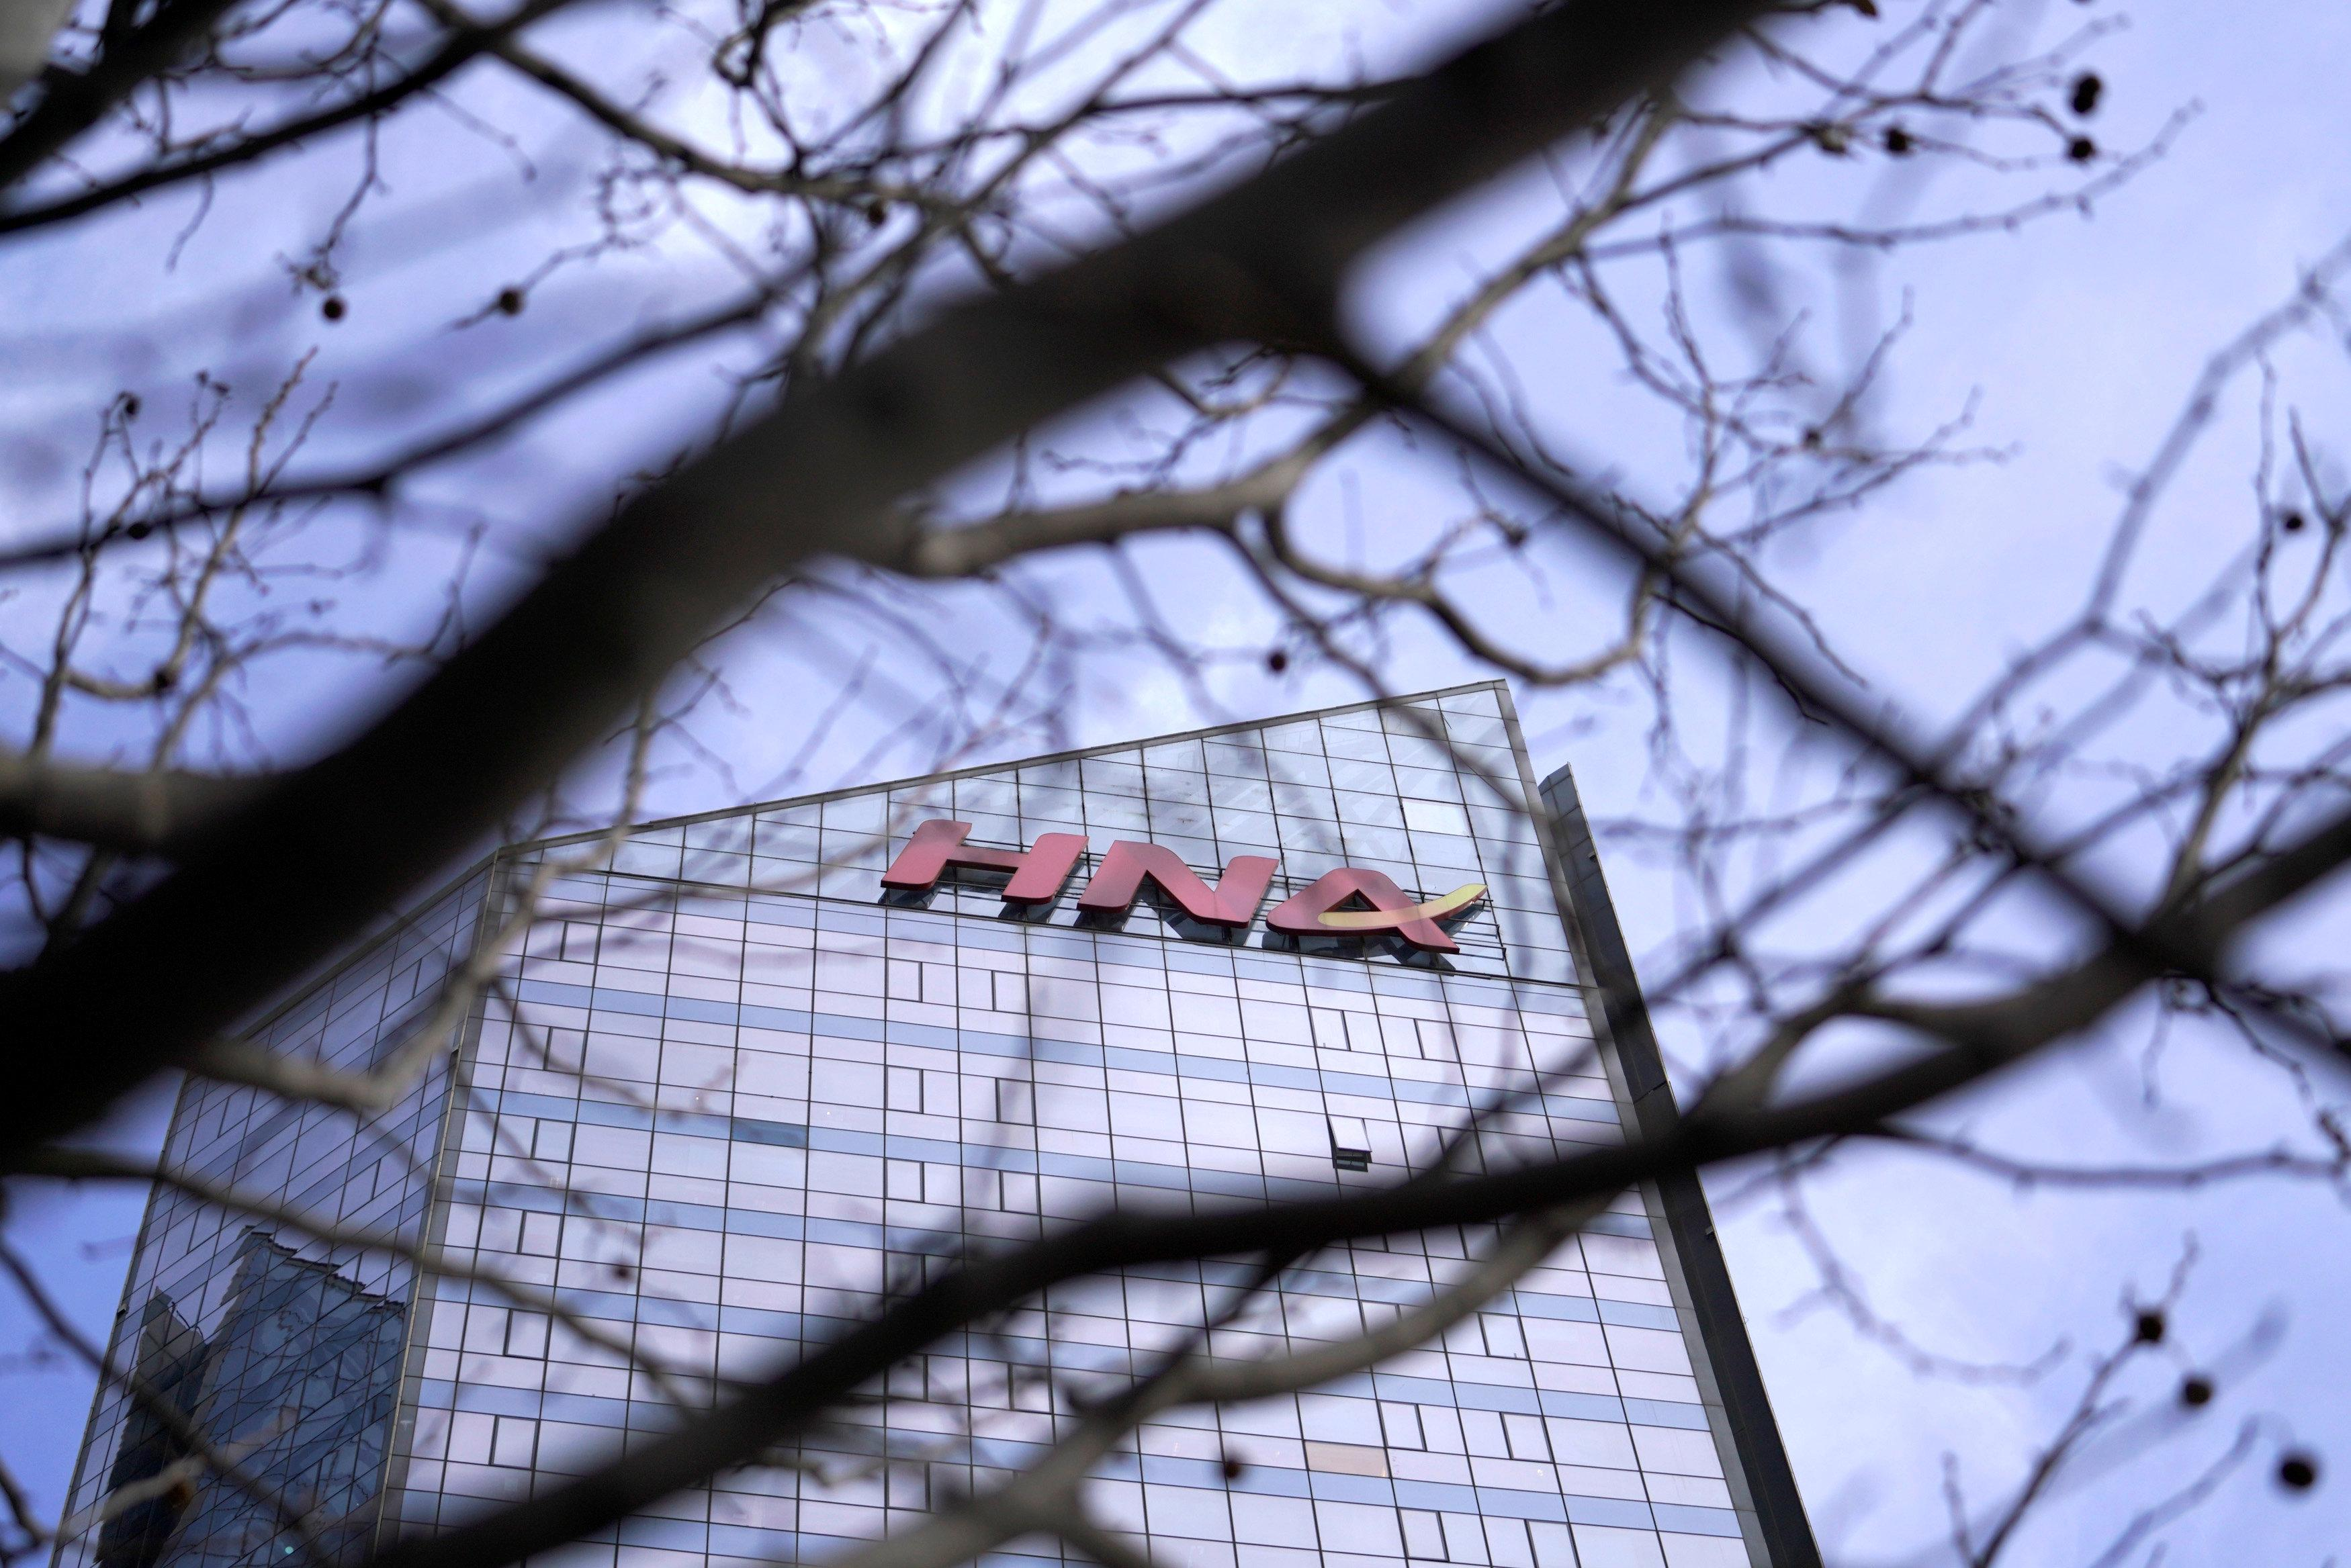 A HNA Group logo is seen on the building of HNA Plaza in Beijing, China February 9, 2018.  Jason Lee